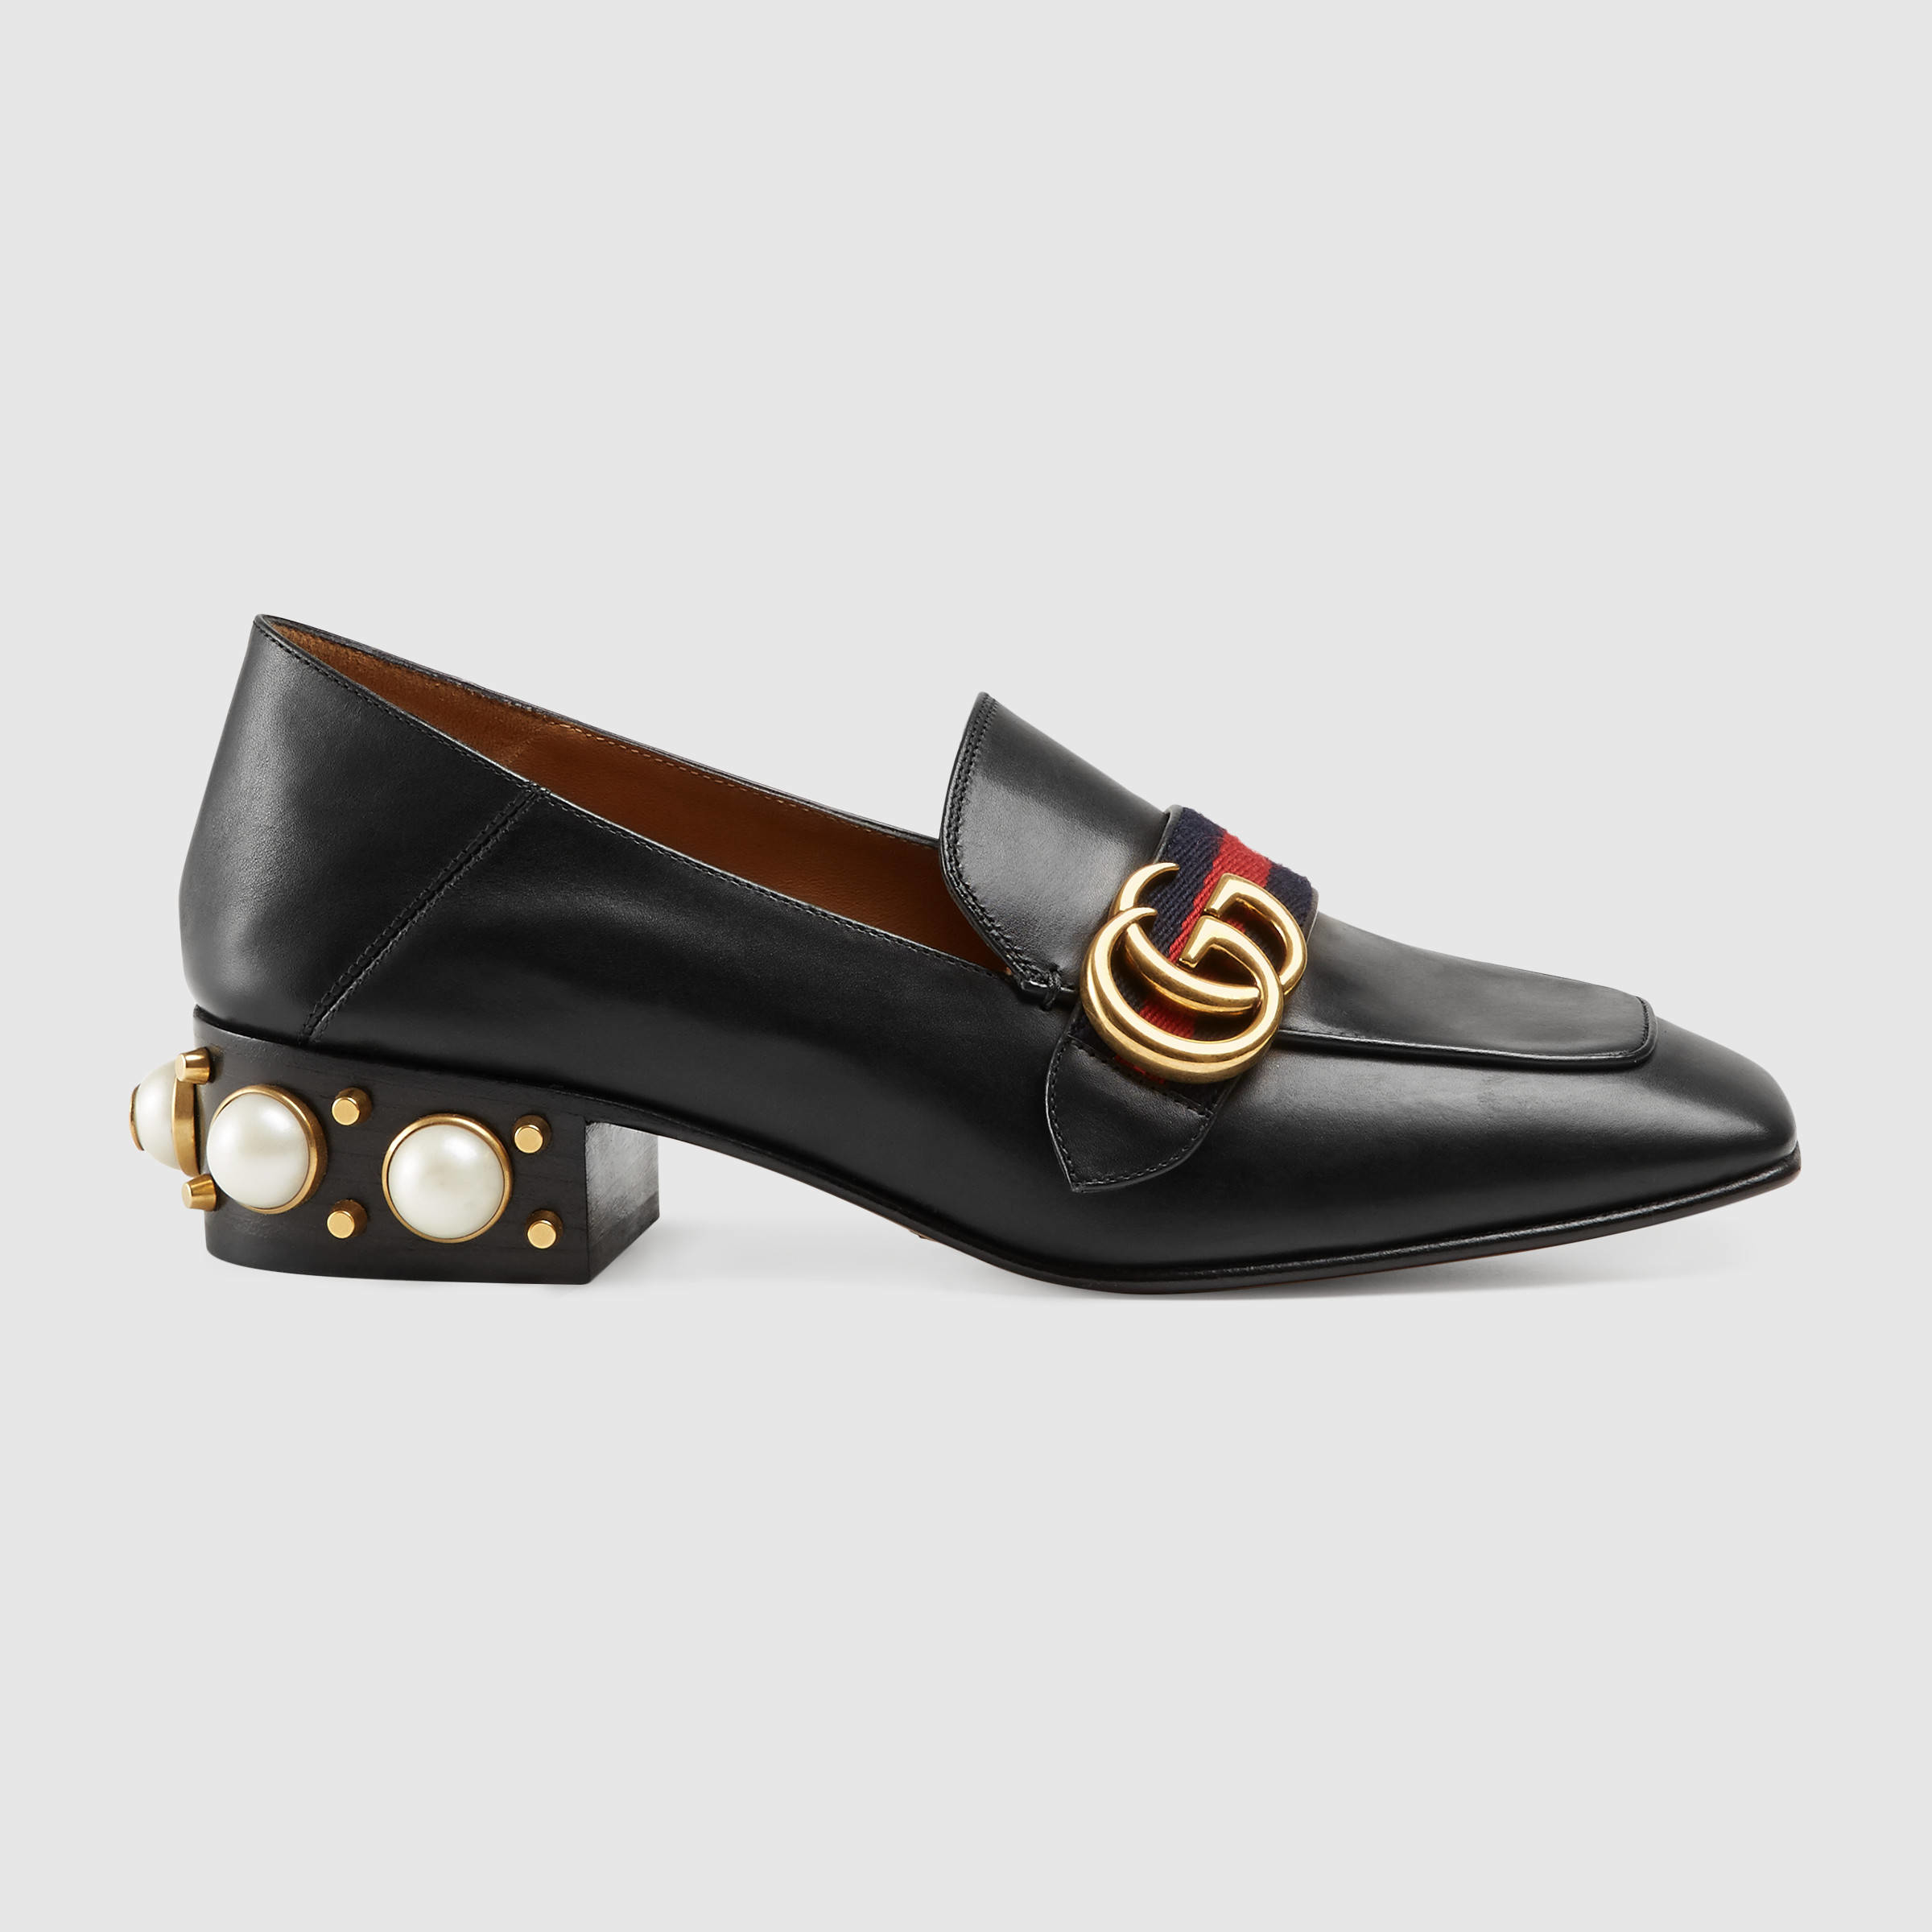 Mens Shoes With Pearls In Heel